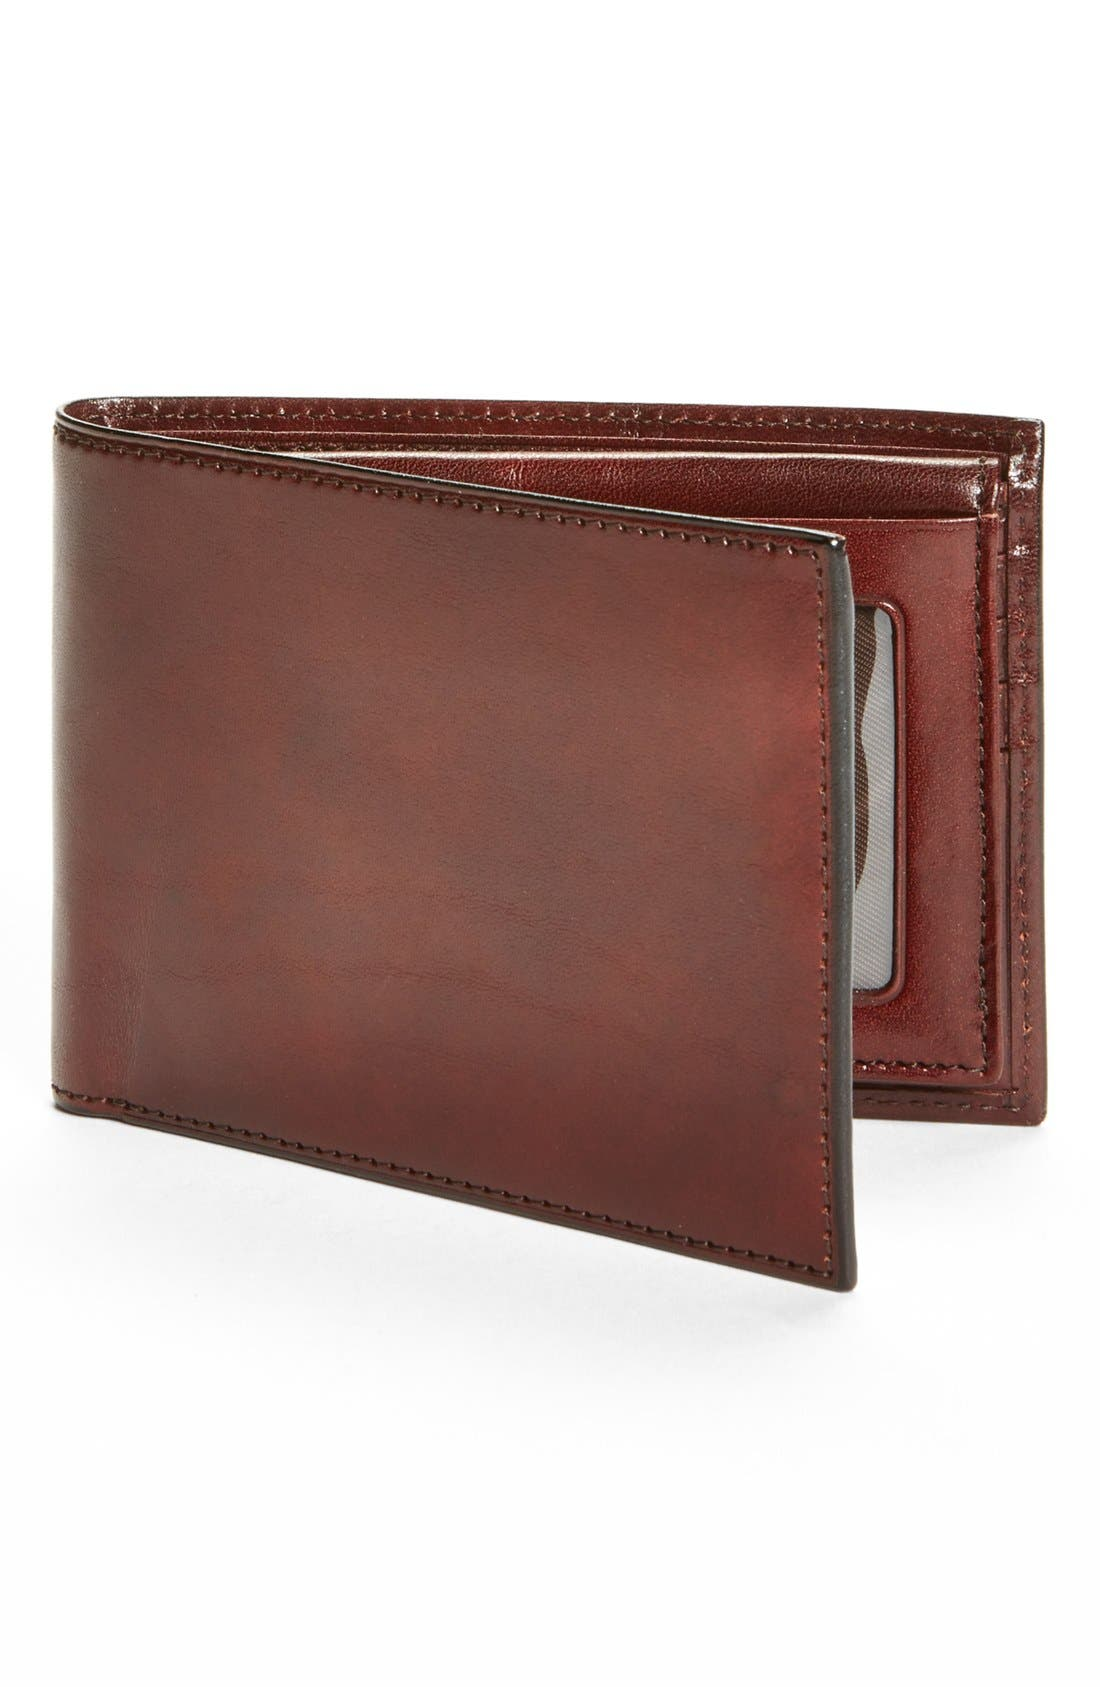 ID Passcase Wallet,                             Main thumbnail 1, color,                             BROWN